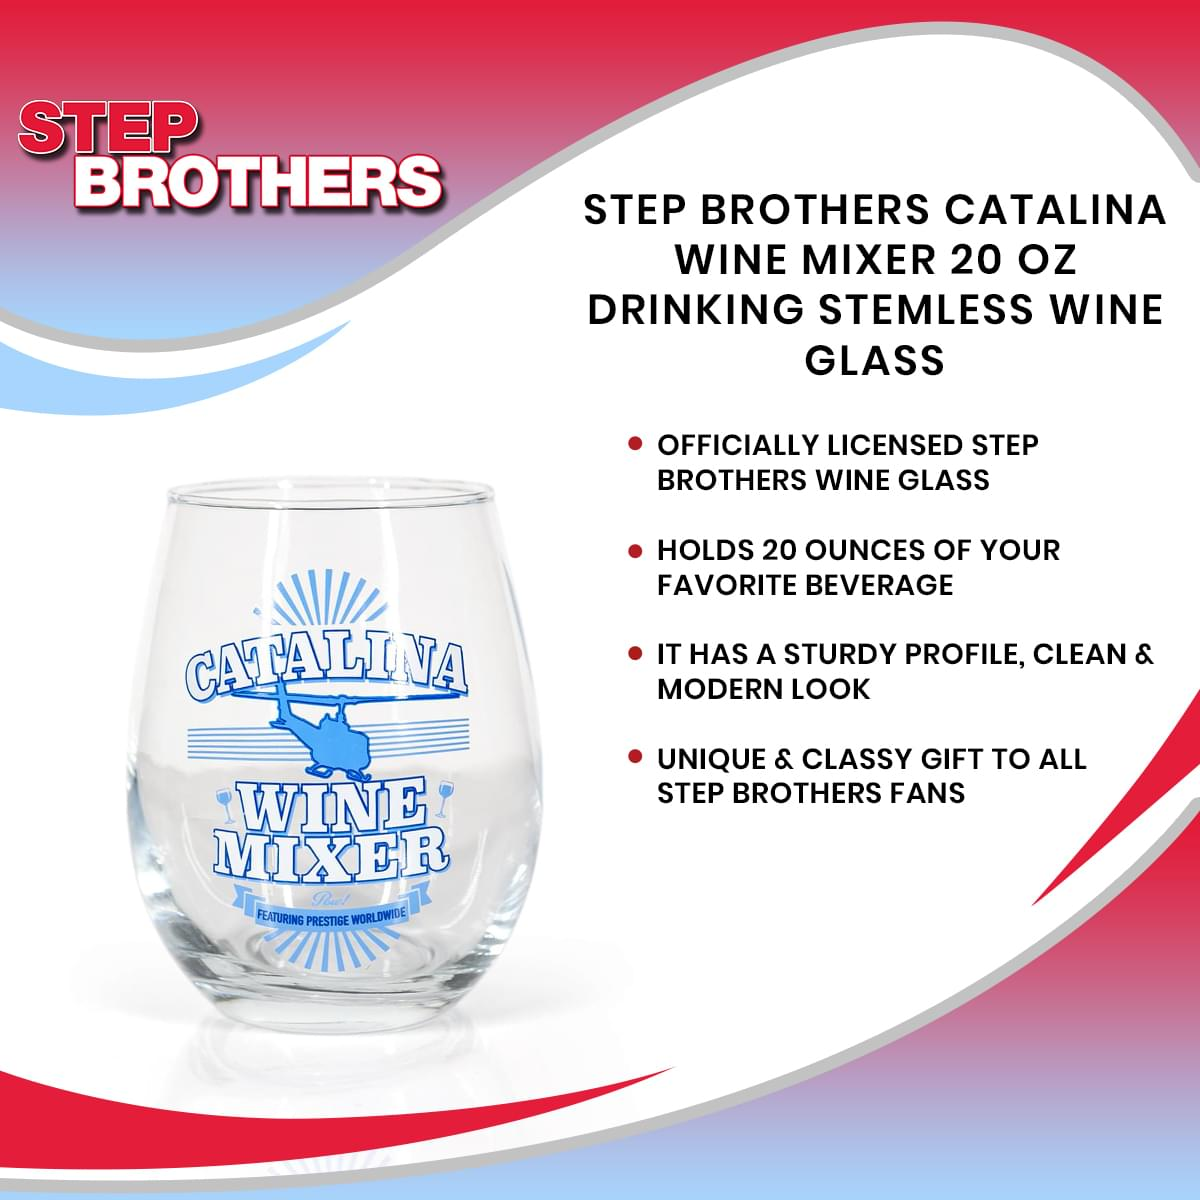 Step Brothers Catalina Wine Mixer 20 oz Drinking Stemless Wine Glass